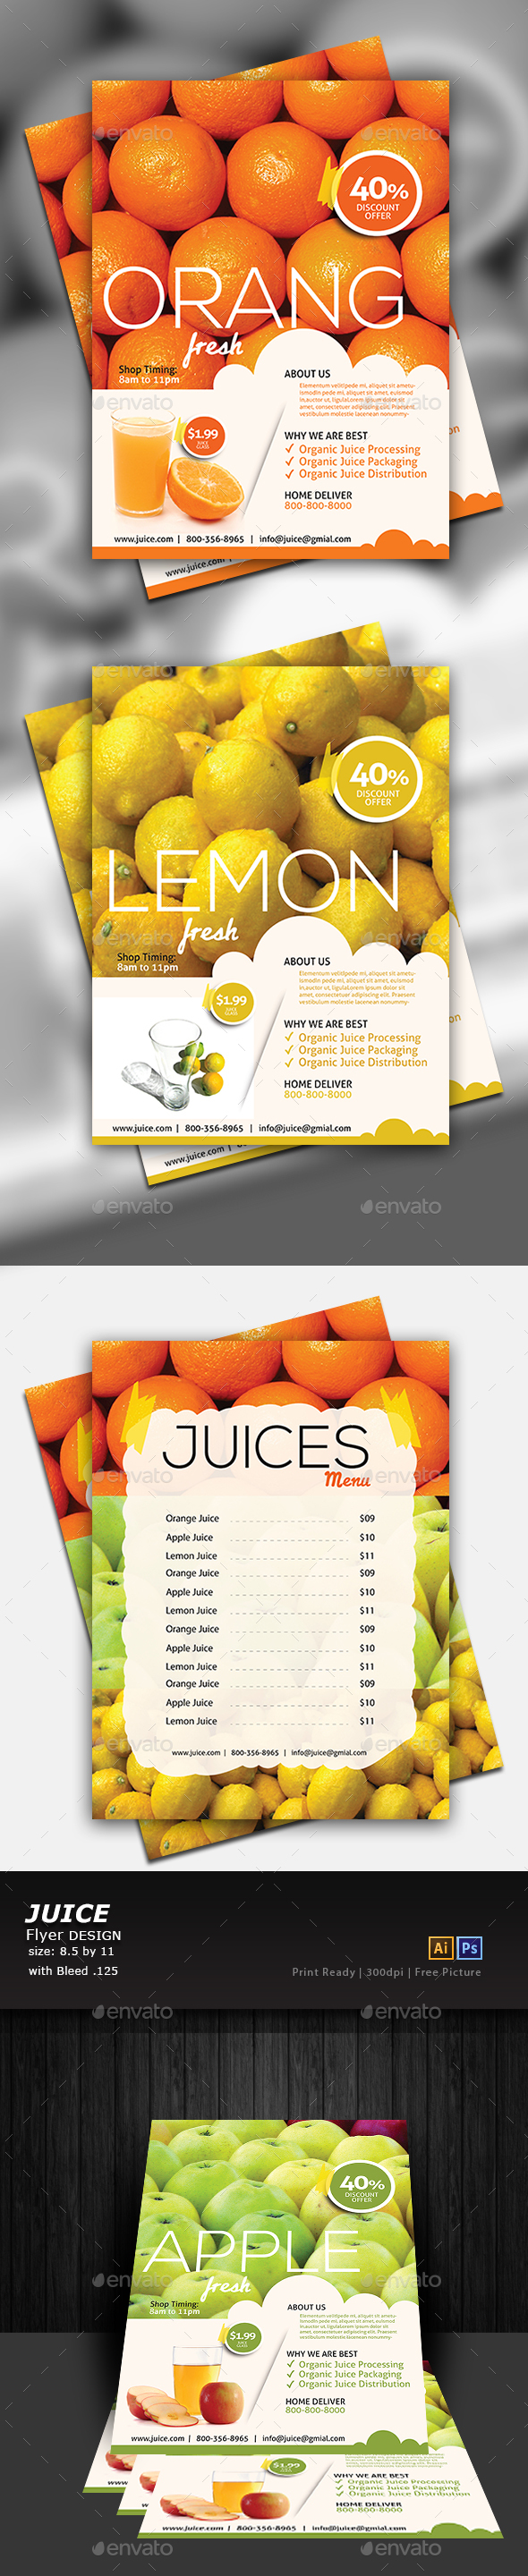 Juice Shop Flyer - Flyers Print Templates